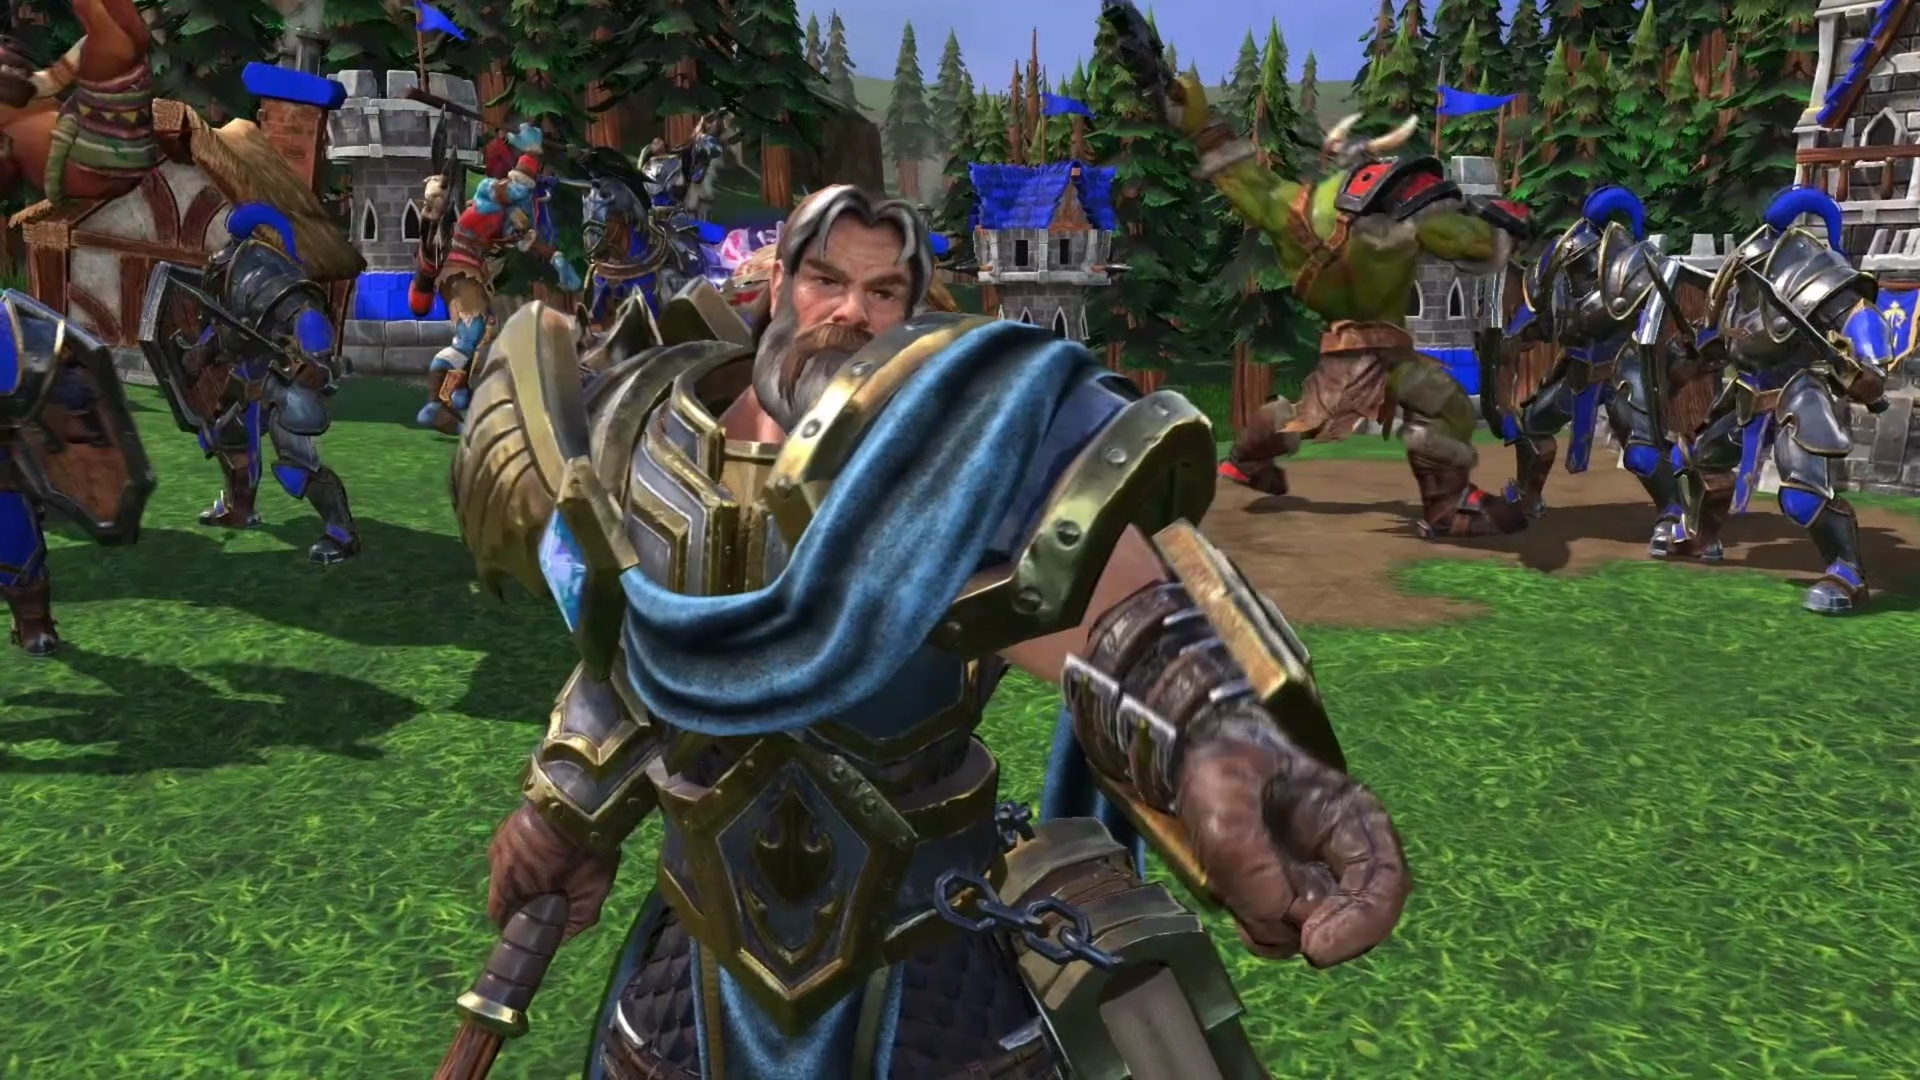 Warcraft III: Reforged - What We Know - Pricing, Spoils of War